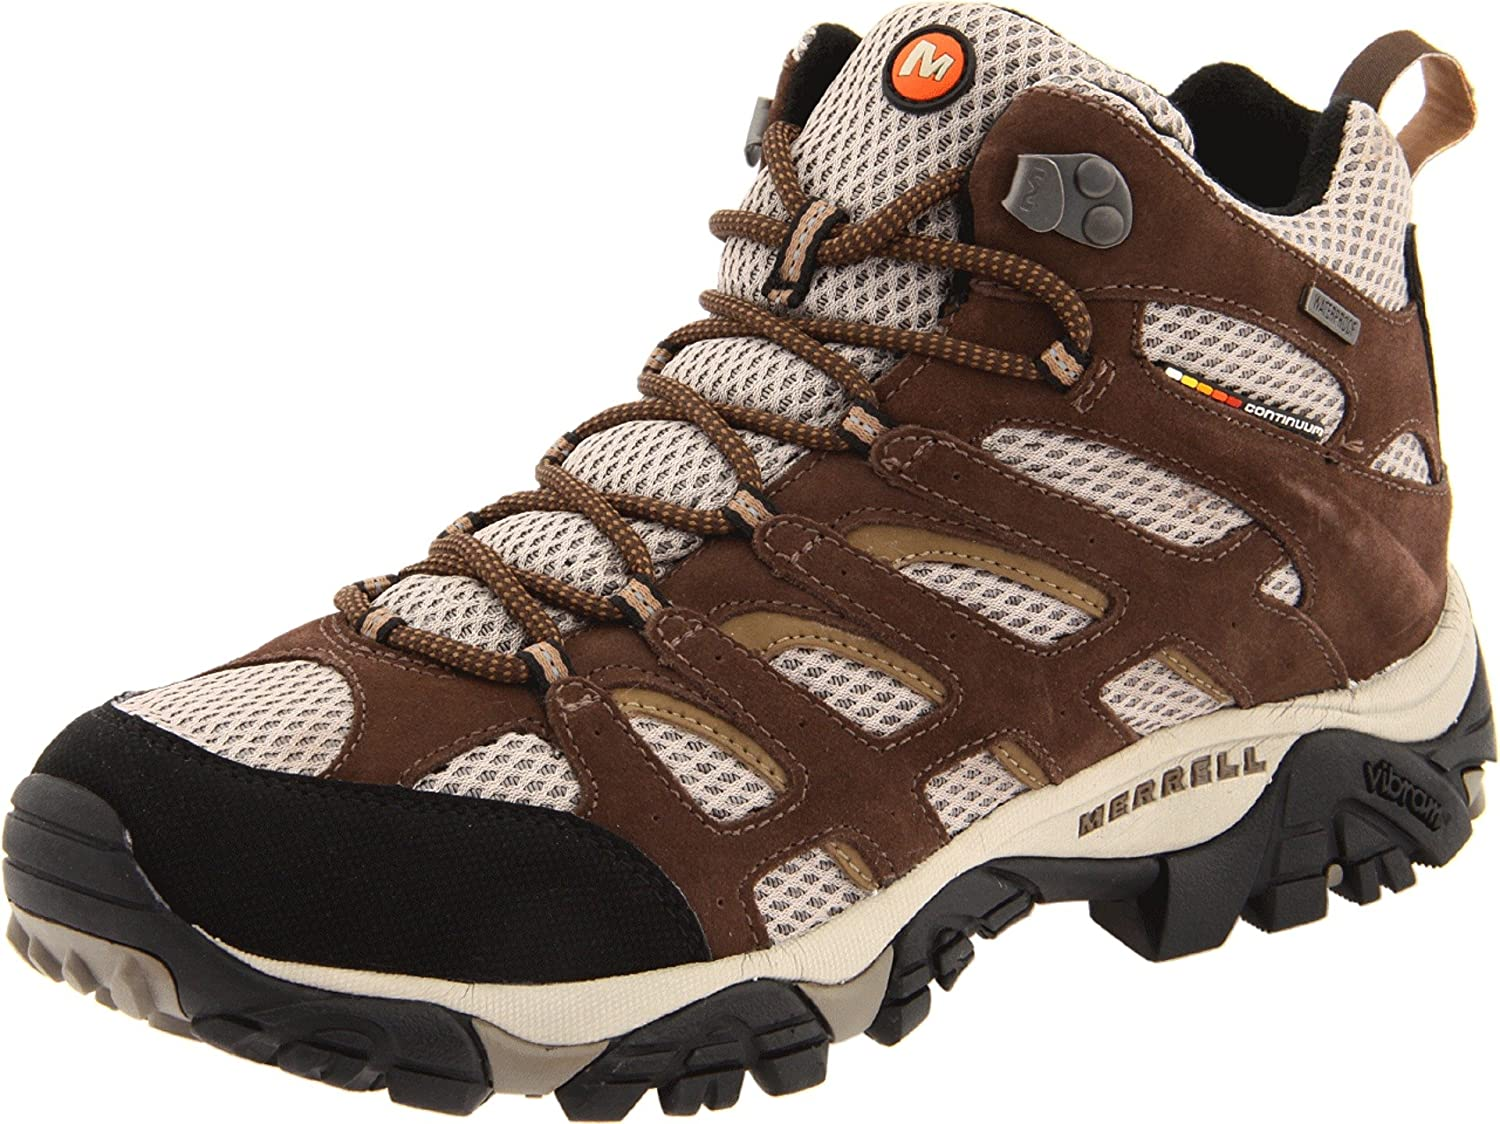 merrell boots size 15 year old